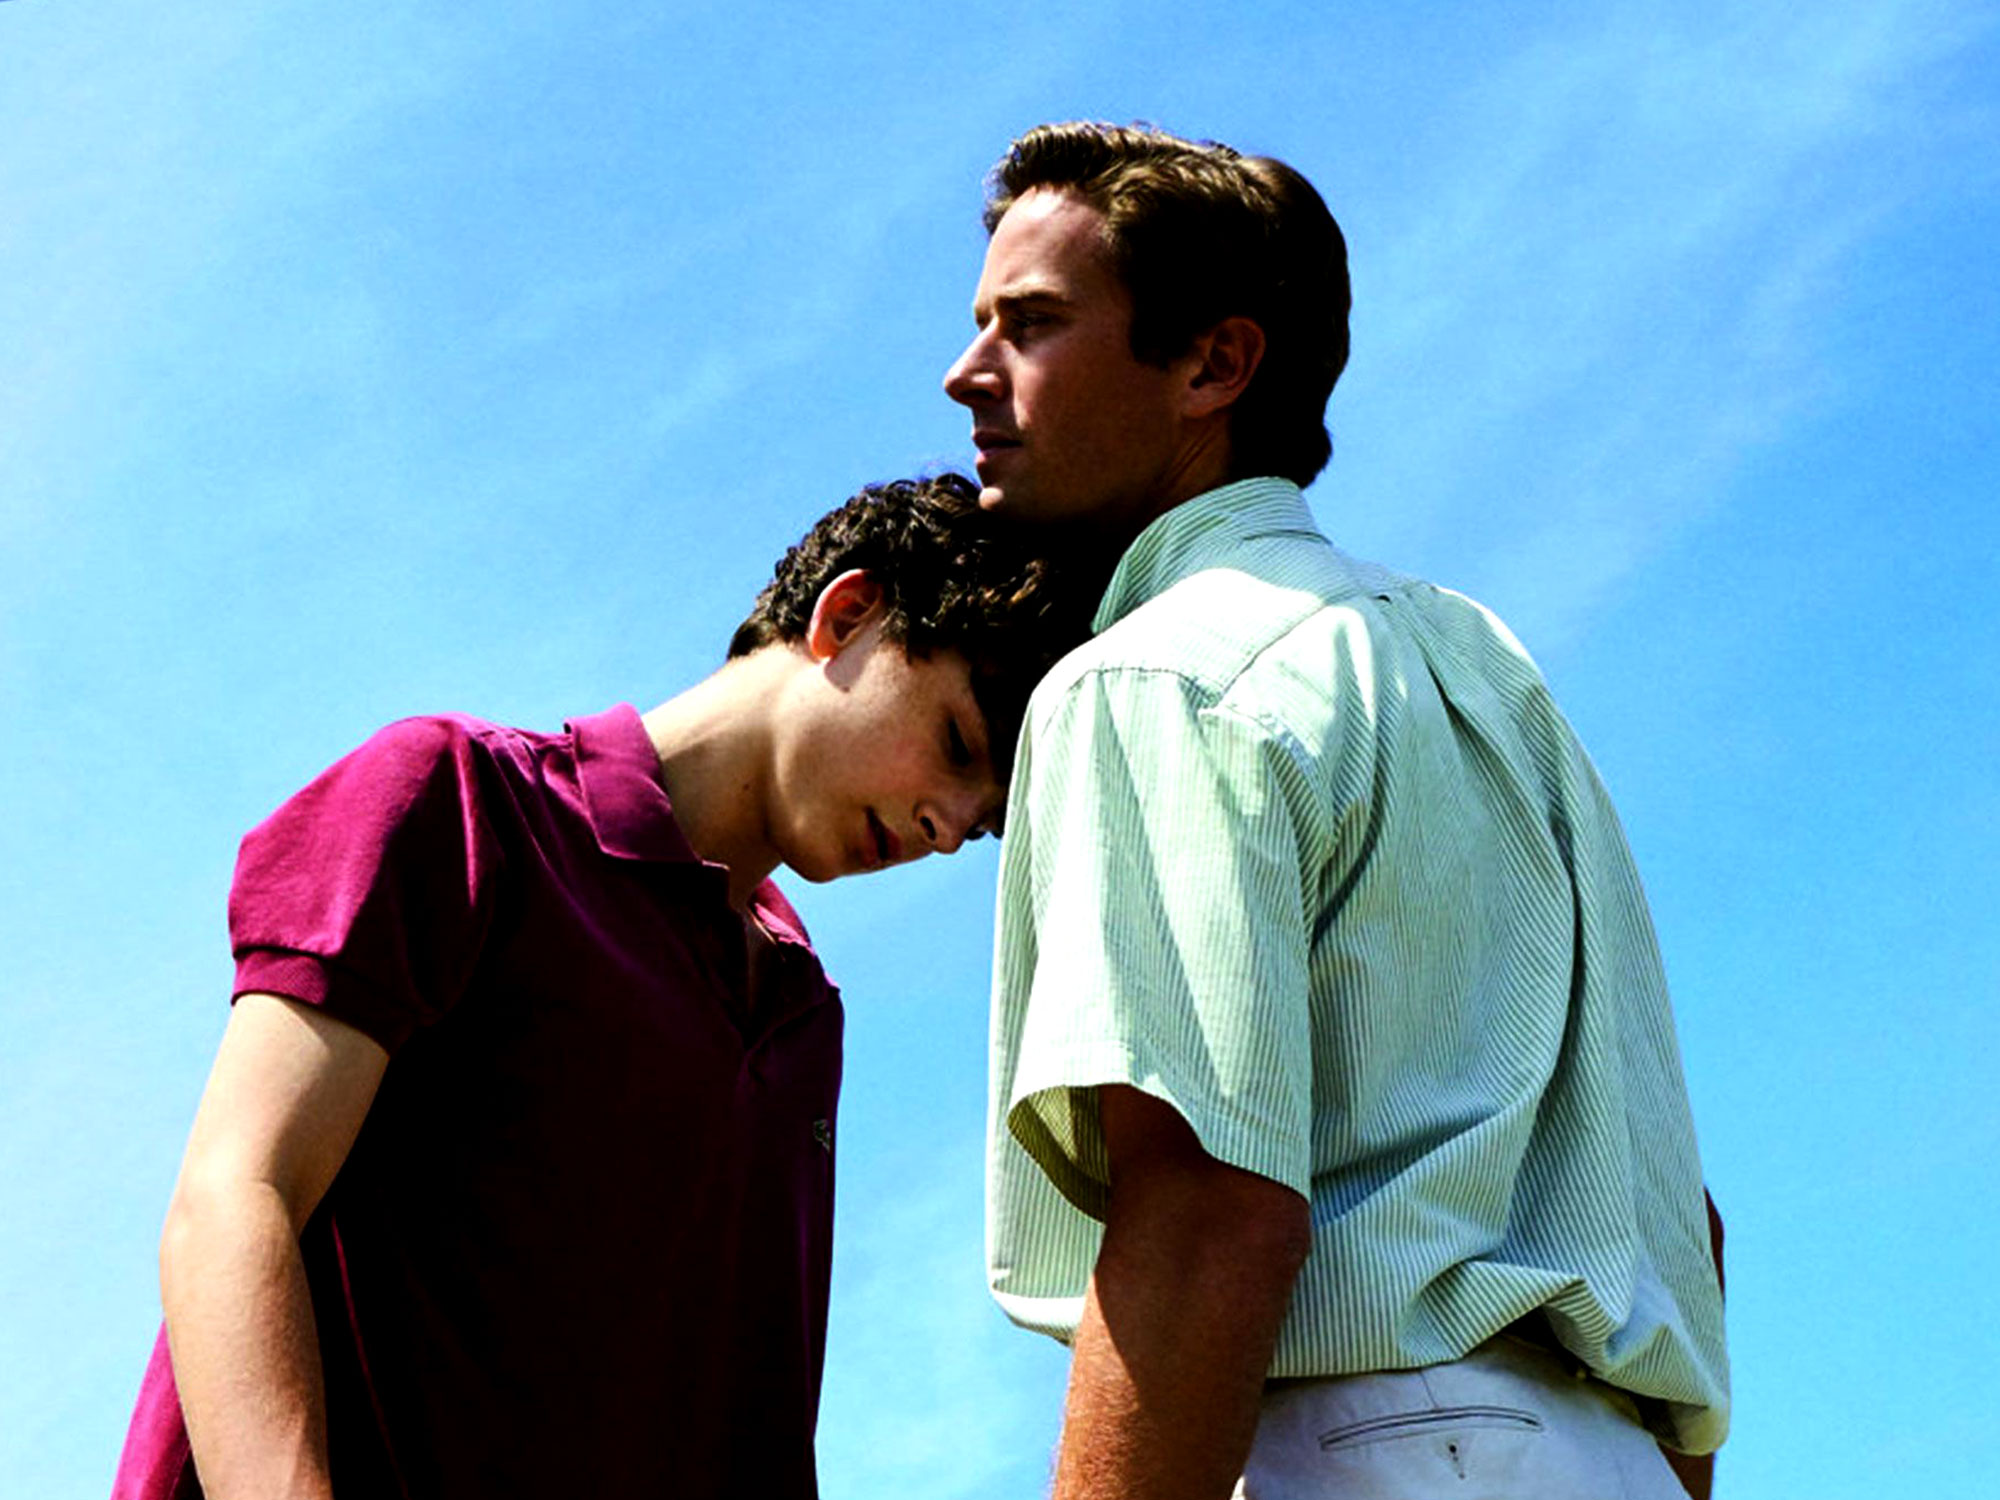 Call Me by Your Name again: André Aciman on his new novel 'Find Me'